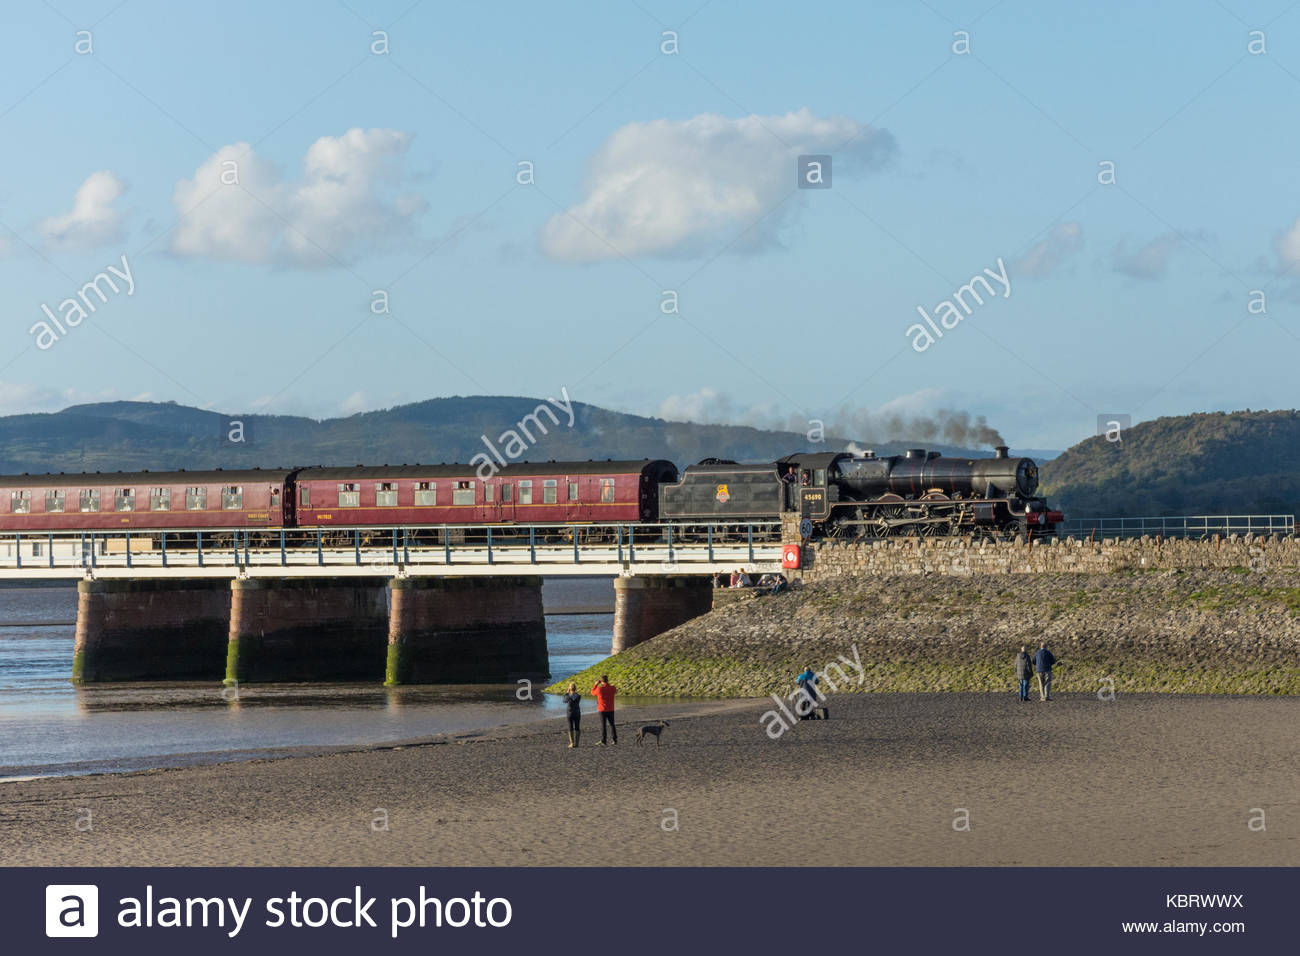 Arnside, Cumbria, UK, 30 September 2017, the evening light illuminates the 45690, 'Leander' locomotive, - Stock Image